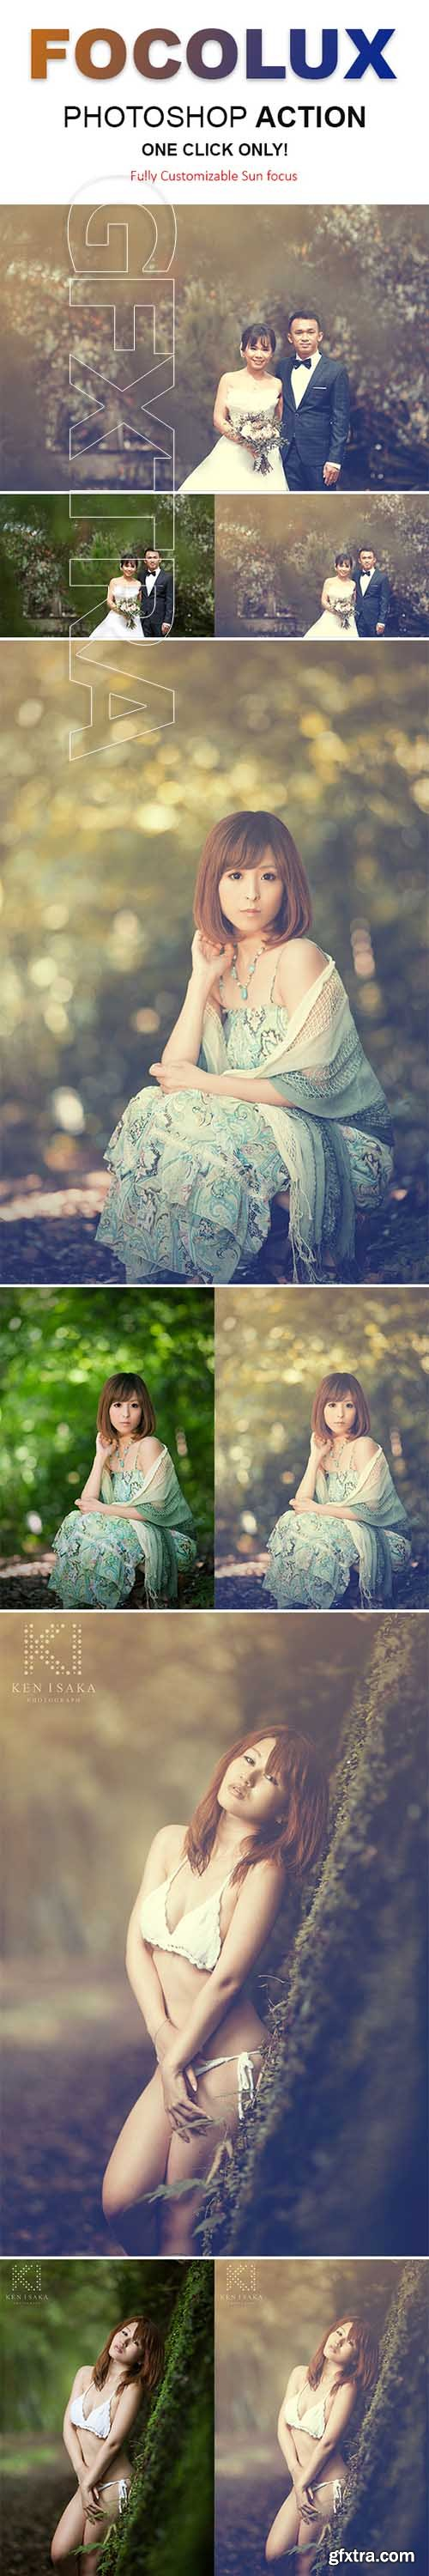 GraphicRiver - Focolux Color Grading & Sun Lighting Effects Photoshop Action 22362708